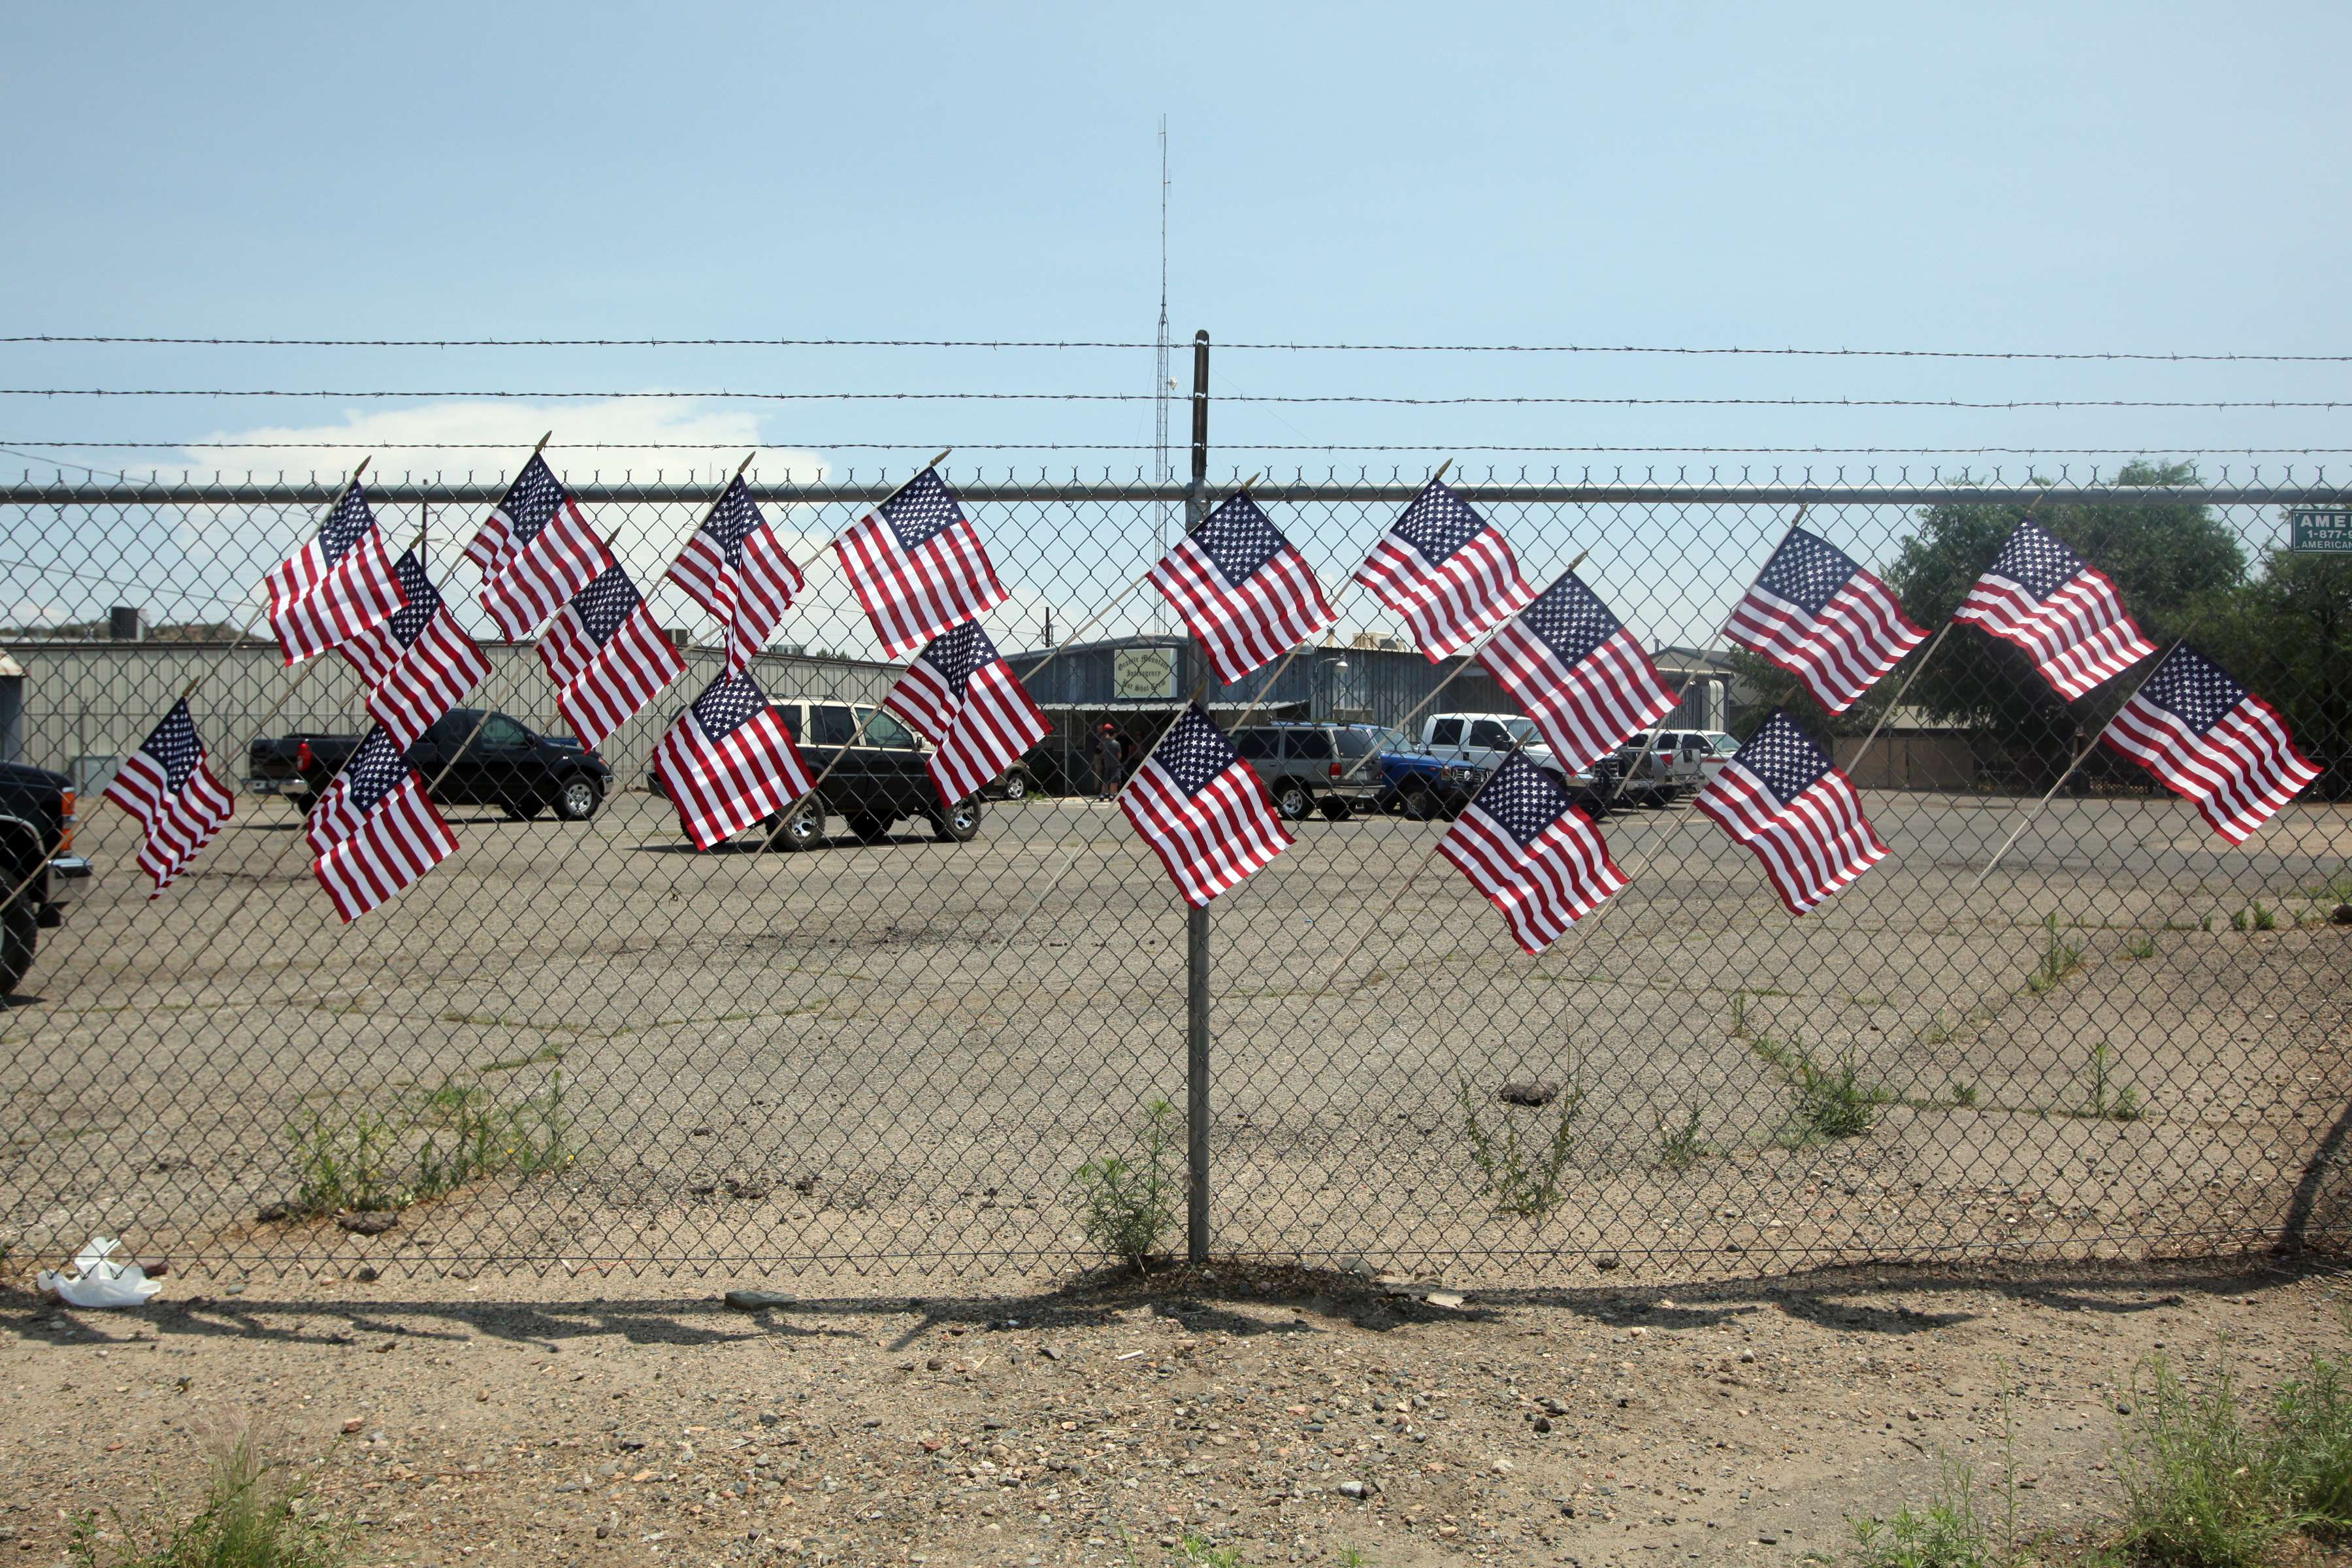 Gallery: Arizona reacts to the deaths of 19 firefighters in wildfire blaze